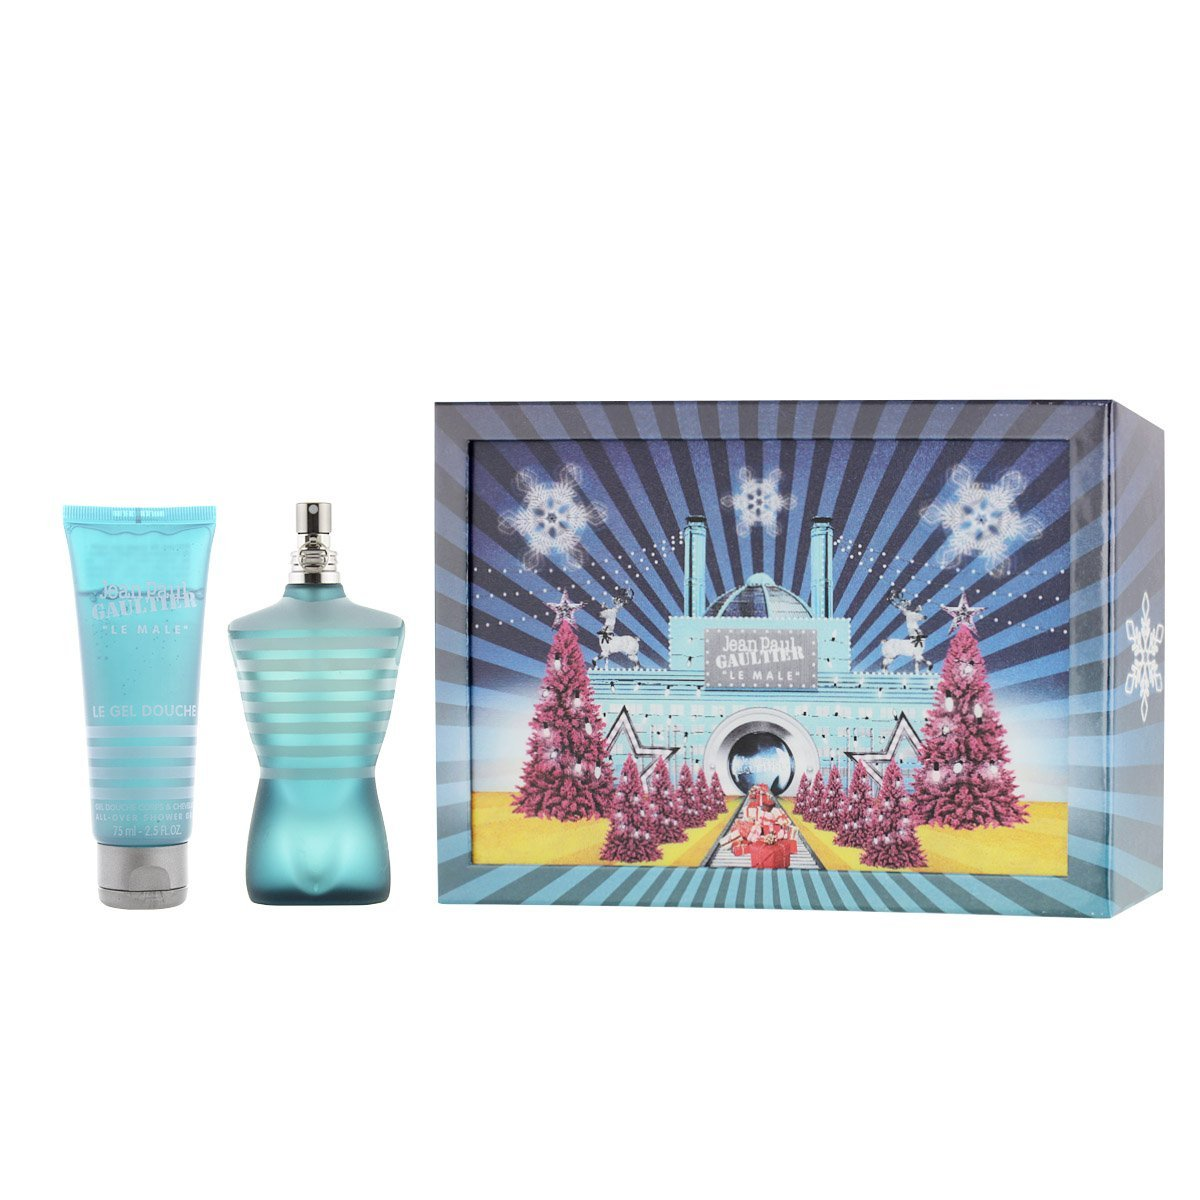 jean paul gaultier le male gift set 75ml edt 75ml all over shower gel christmas edition. Black Bedroom Furniture Sets. Home Design Ideas